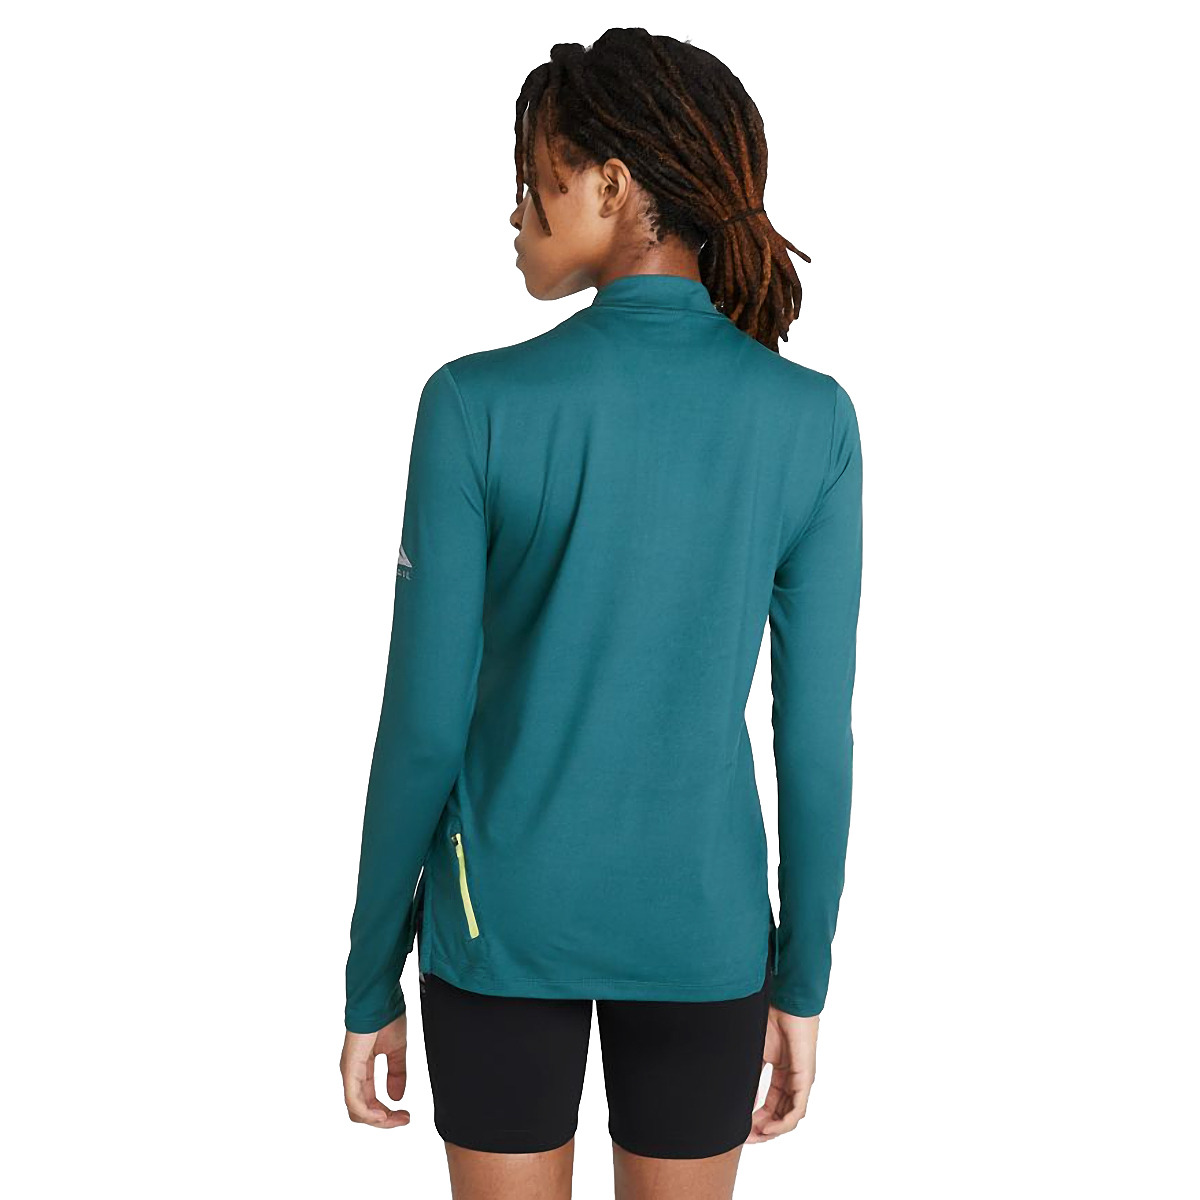 Women's Nike Element Trail Running Midlayer - Color: Dark Teal Green/Reflective Silver - Size: XS, Dark Teal Green/Reflective Silver, large, image 2